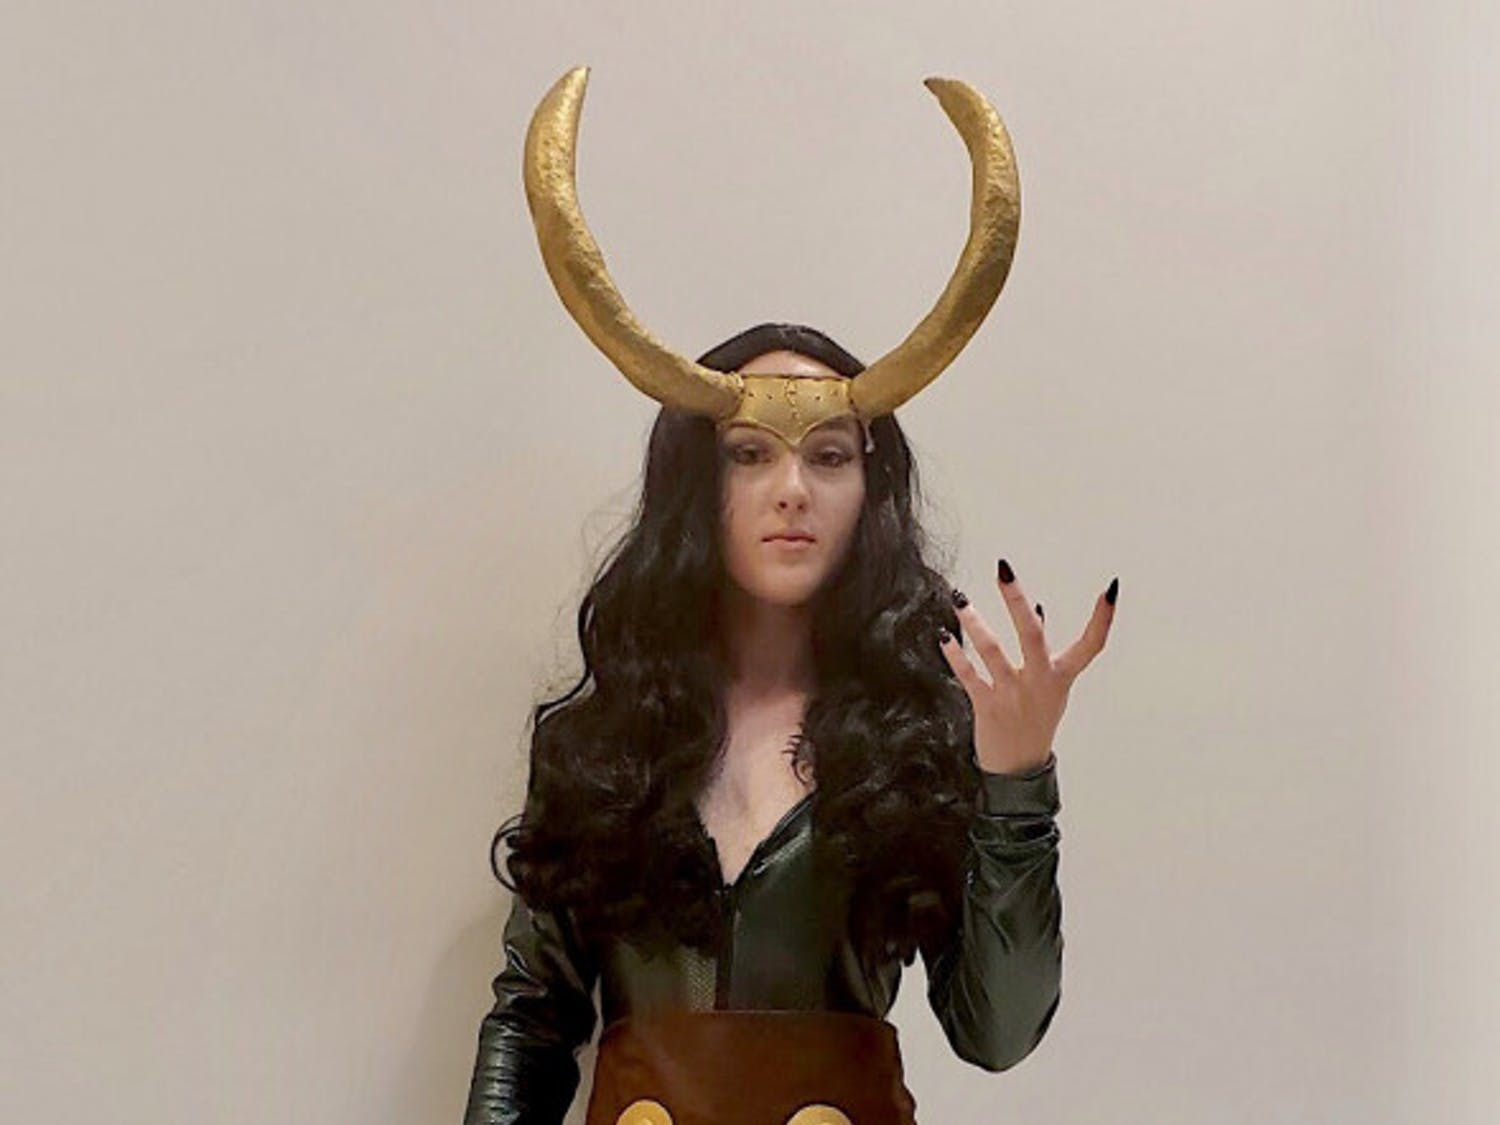 "Lady LokiKati Ankrom, 21, resident of Leesburg, Florida, attended SwampCon as a genderbent Thor character, Lady Loki. Gender bending is when someone cosplays a character as its opposite gender.Ankrom has been improving the costume for the past four years. She first cosplayed Lady Loki when she was 18 and felt very proud when she finished the costume in nine months.Most of the cosplay is made out of a latex bodysuit and is not breathable, according to Ankrom.""These horns I've had for like three years,"" she said. ""I refuse to get rid of them.""She advises first-time cosplayers to not make the costume harder than it needs to be.""You will get better eventually,"" she said. ""Just start at the beginning and work your way up."""